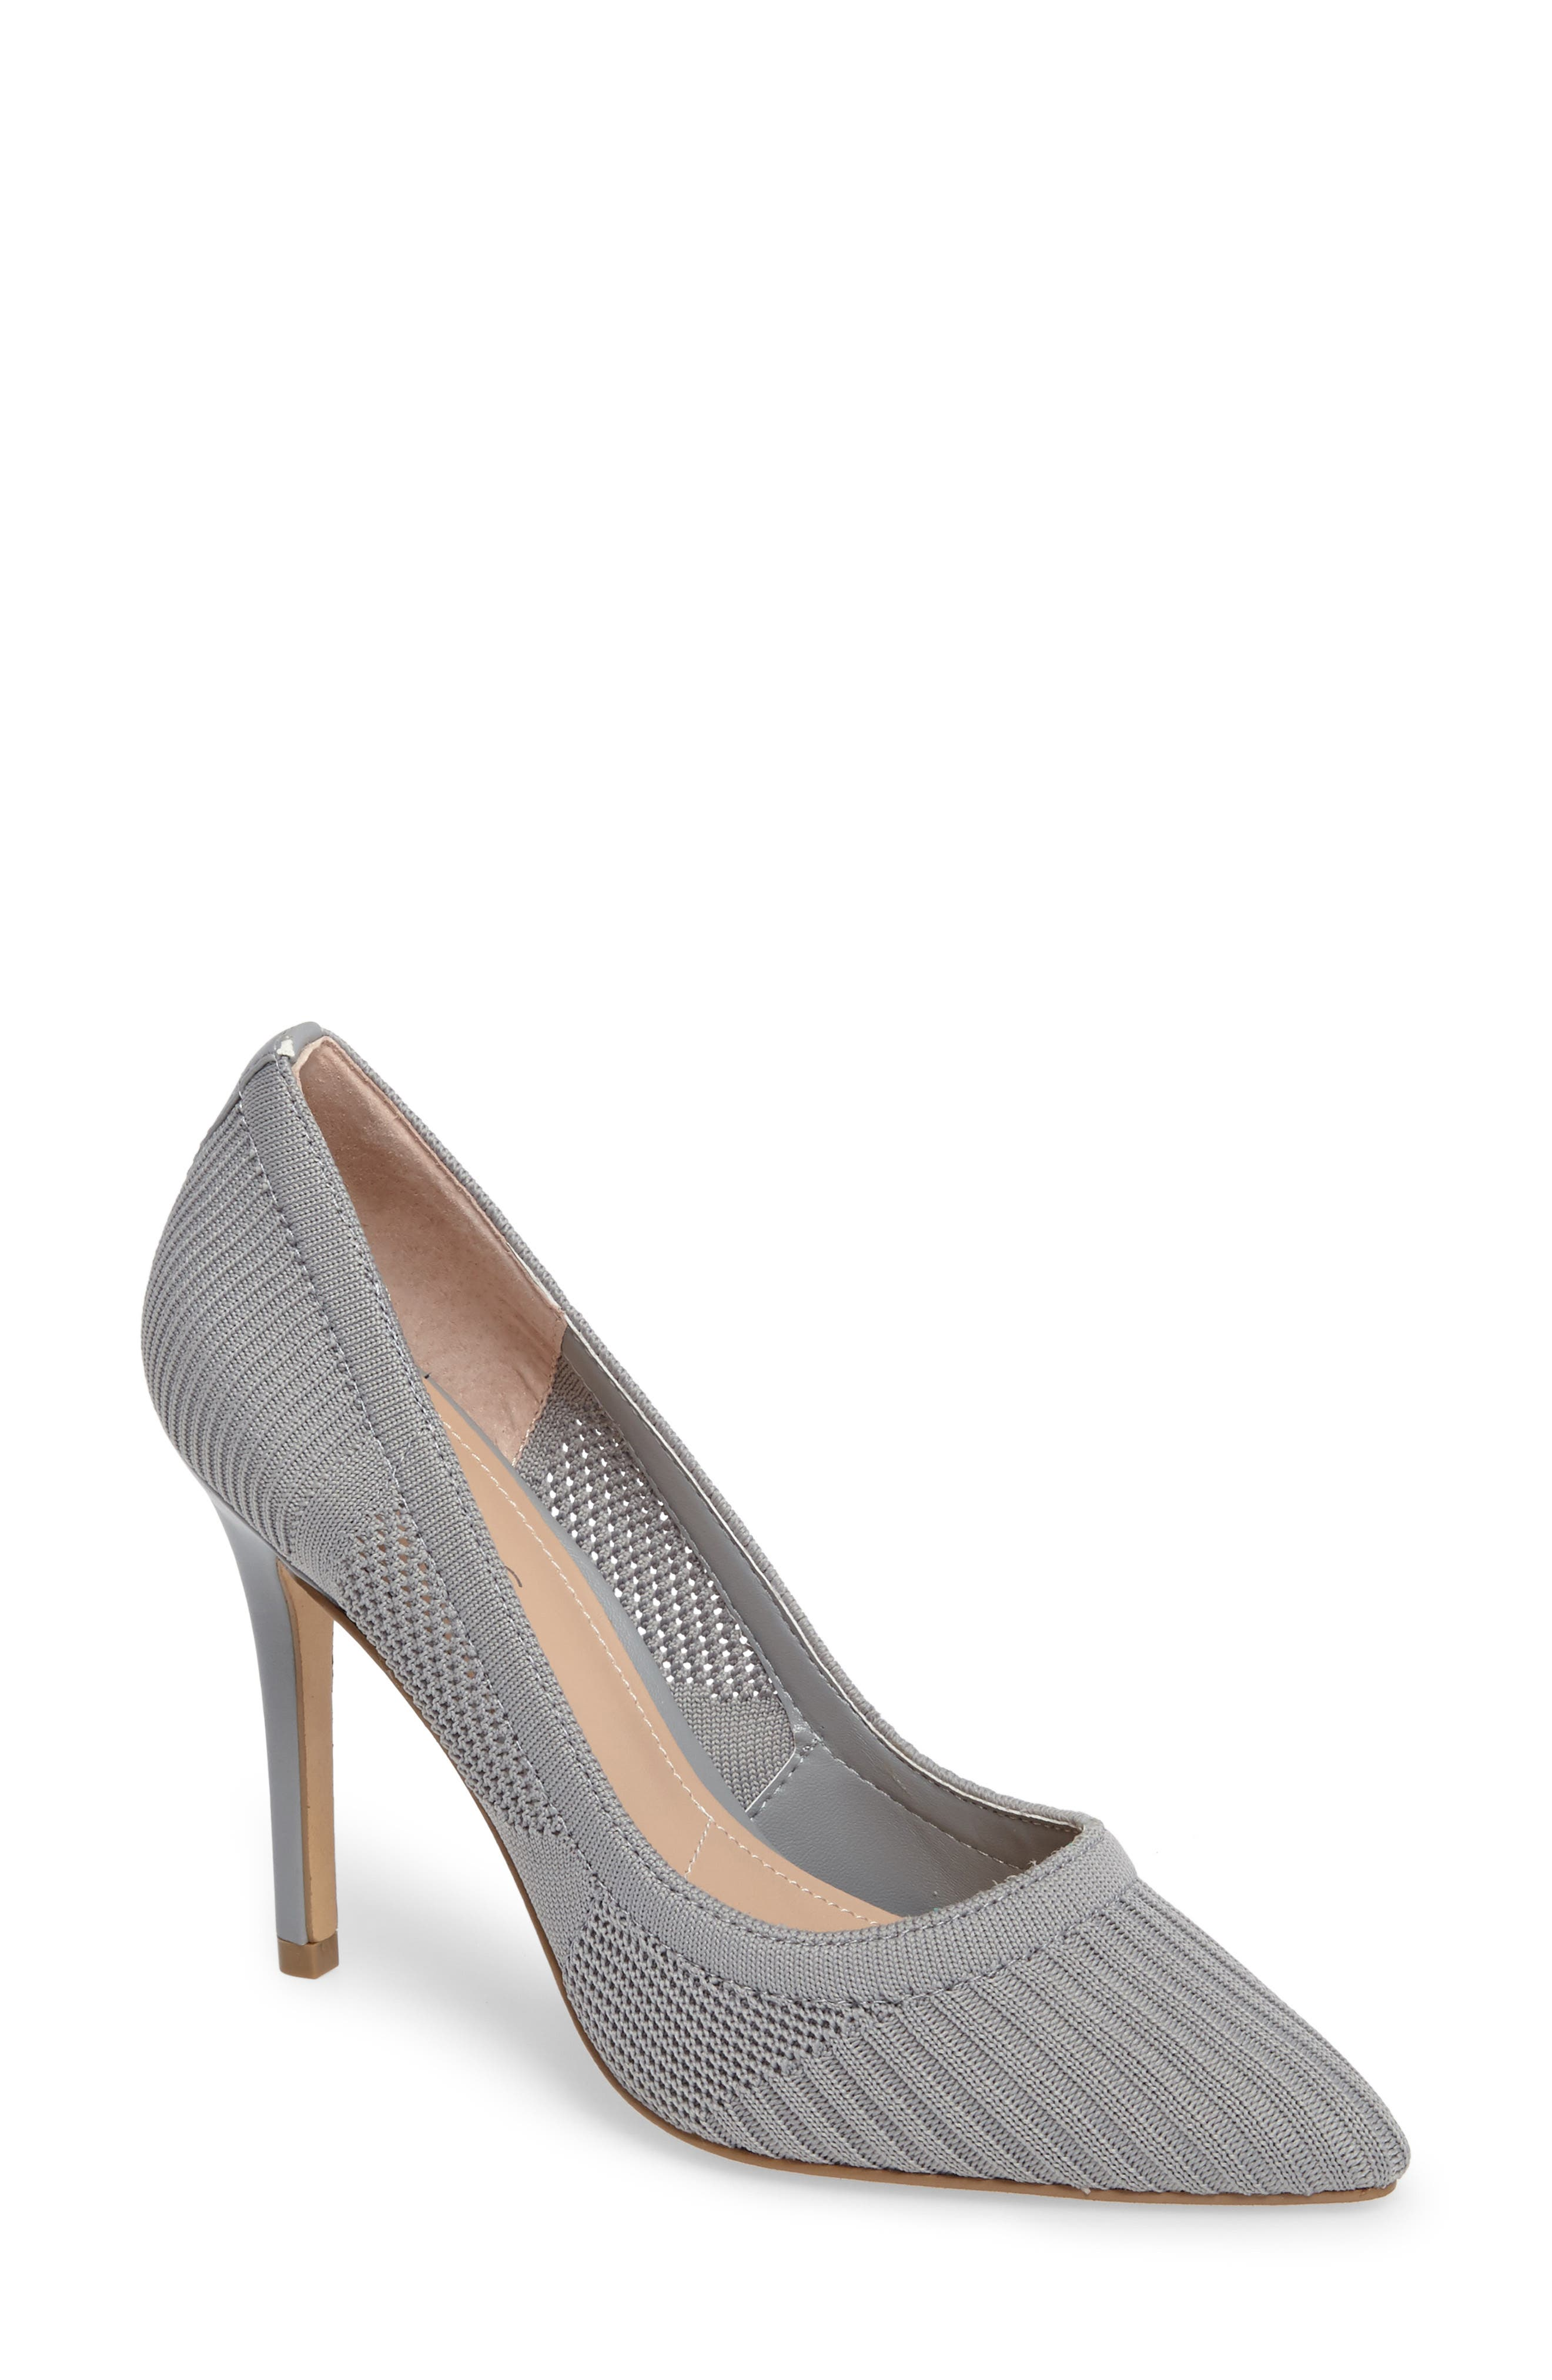 Alternate Image 1 Selected - Charles by Charles David Pacey Knit Pump (Women)